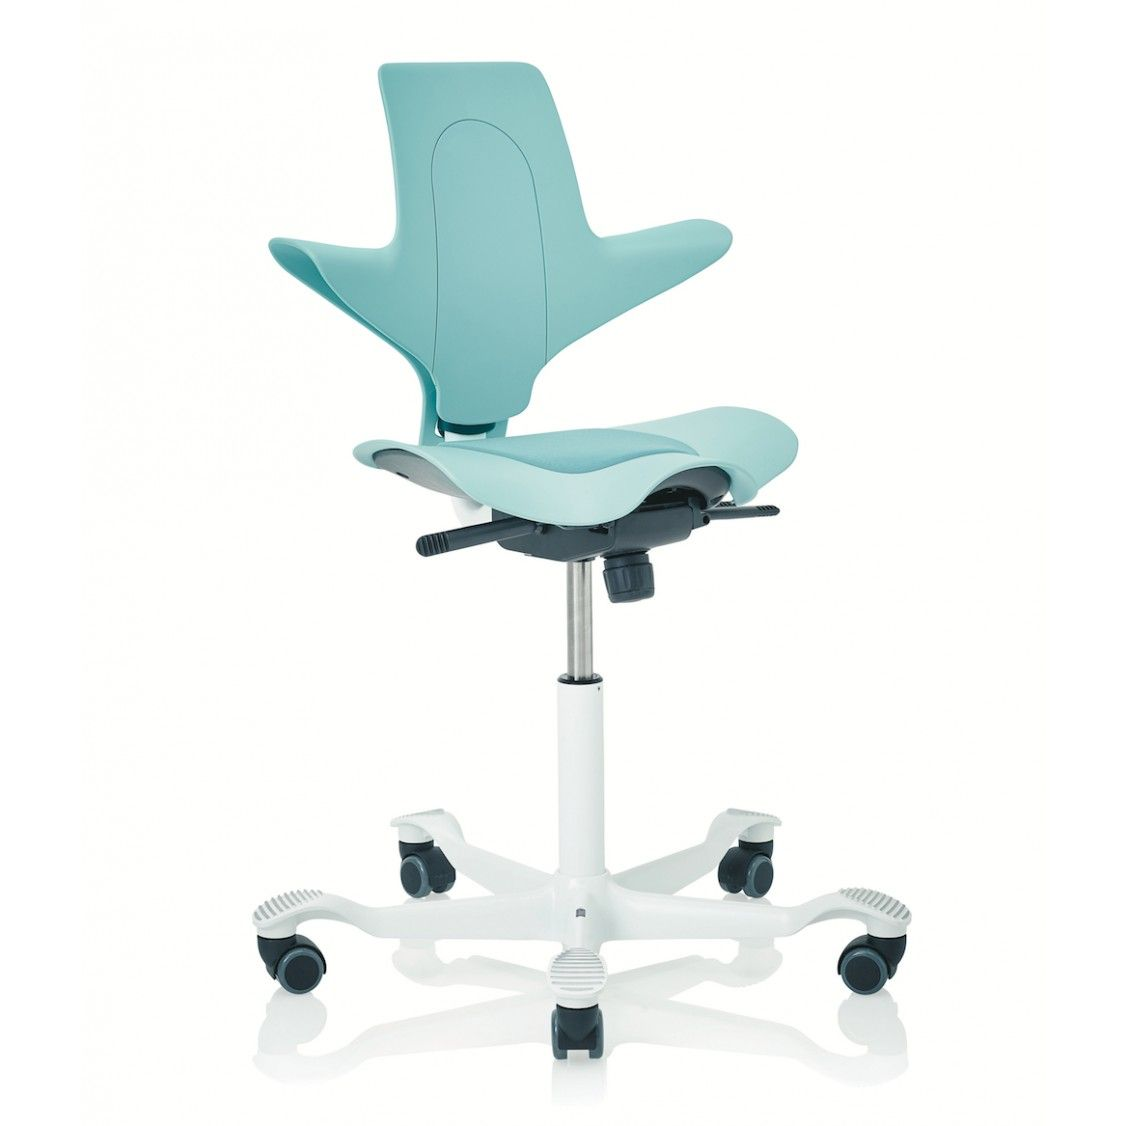 Capisco Puls By Hag Chair Saddle Chair Ergonomic Desk Chair